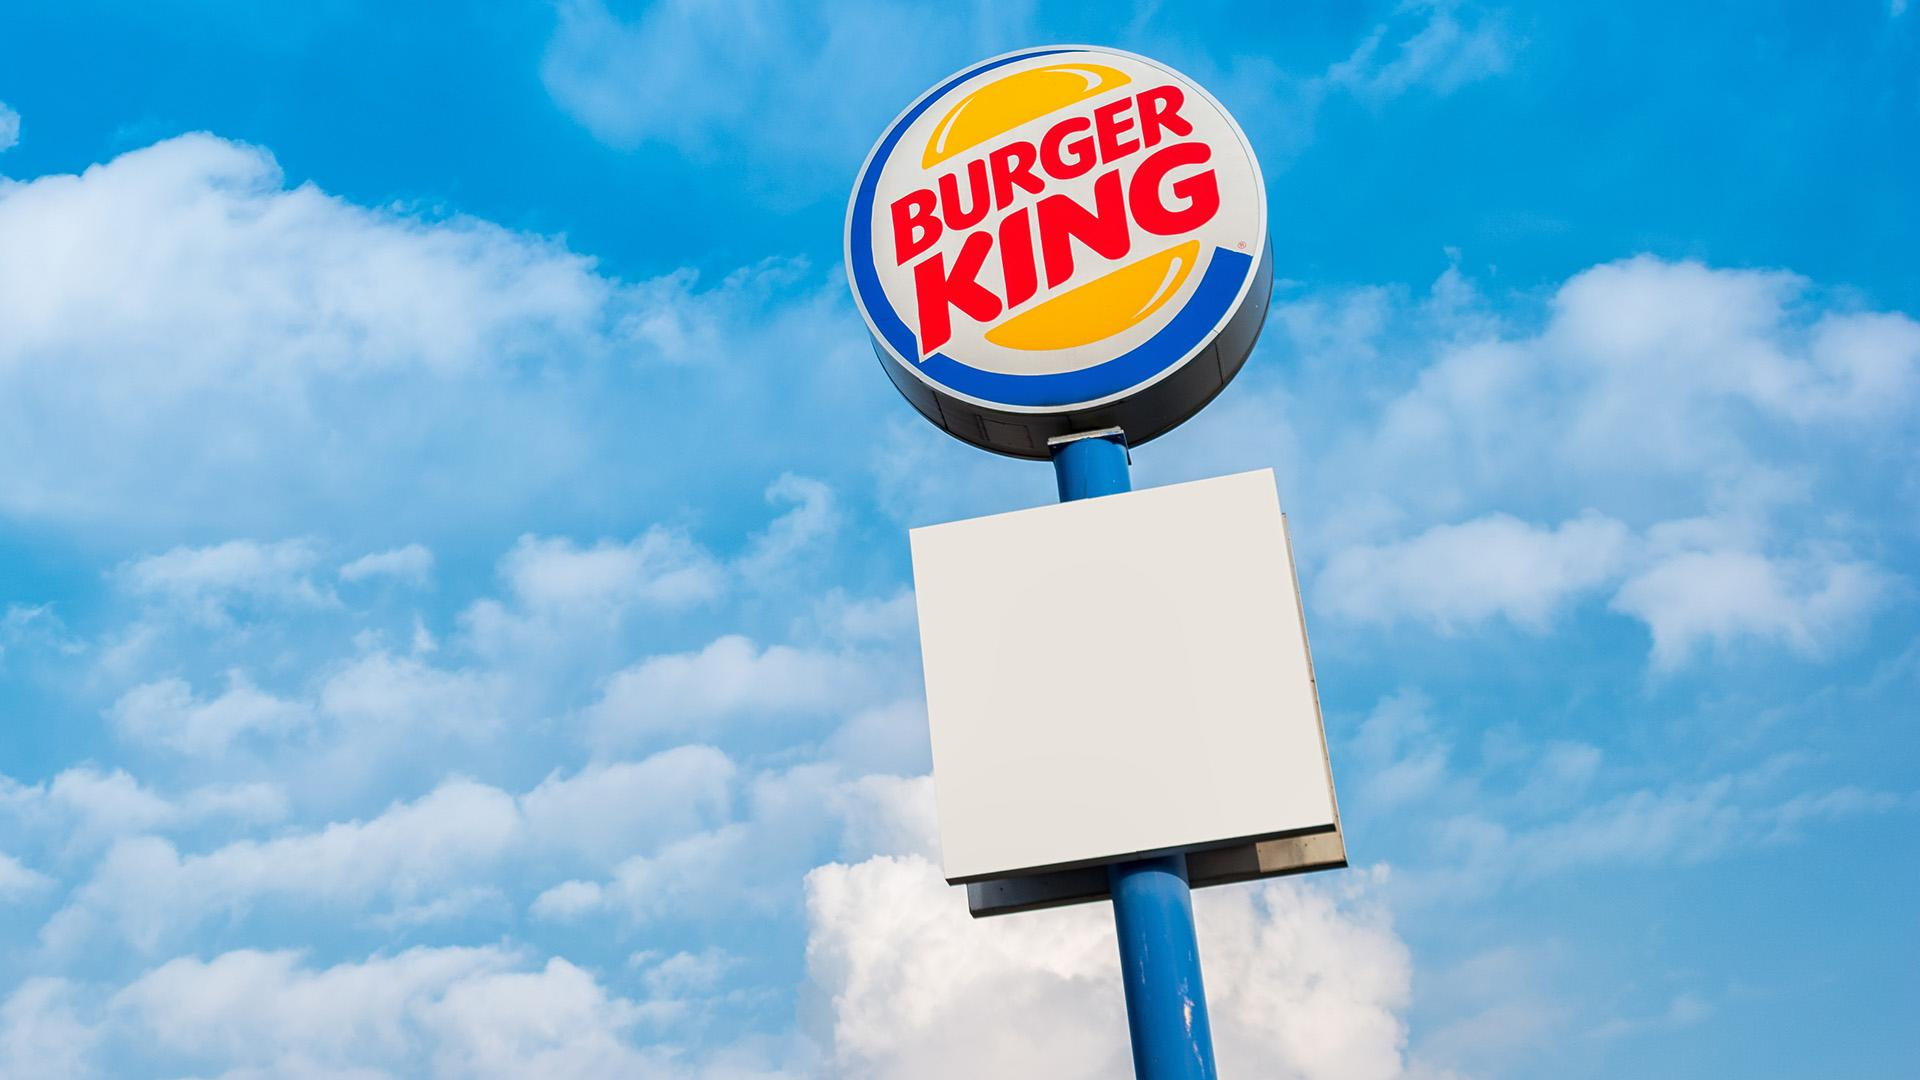 Burger King is Supporting Mental Health Awareness in the Tastiest Way Possible